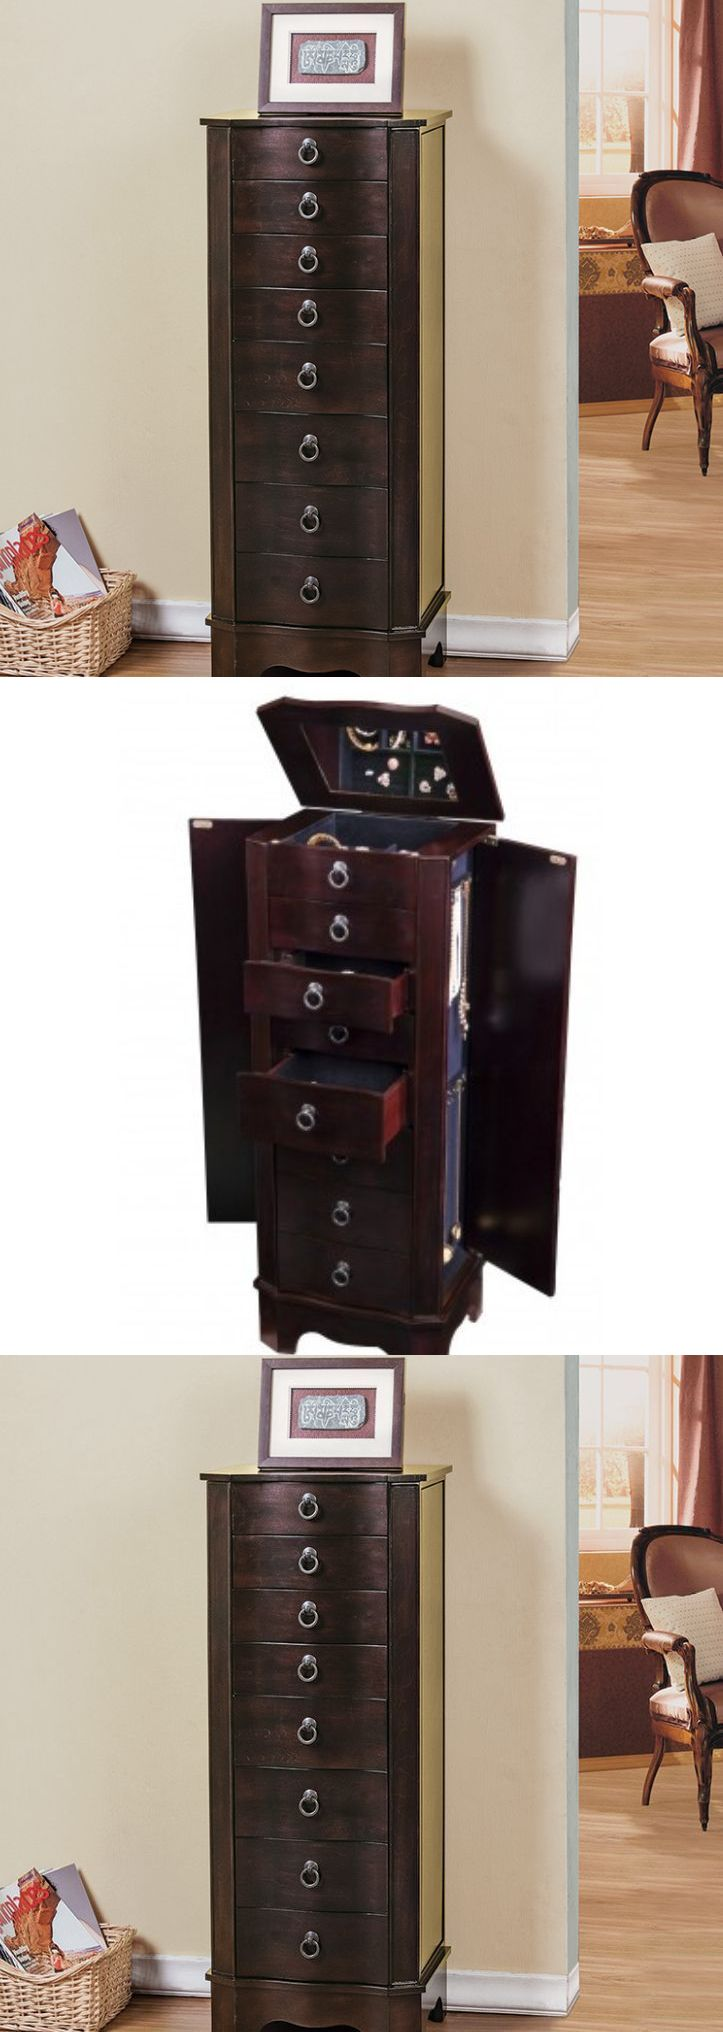 Jewelry Boxes 3820: Tall Jewelry Armoire And Mirror Chest Locking Box Brown  Wood Storage Cabinet